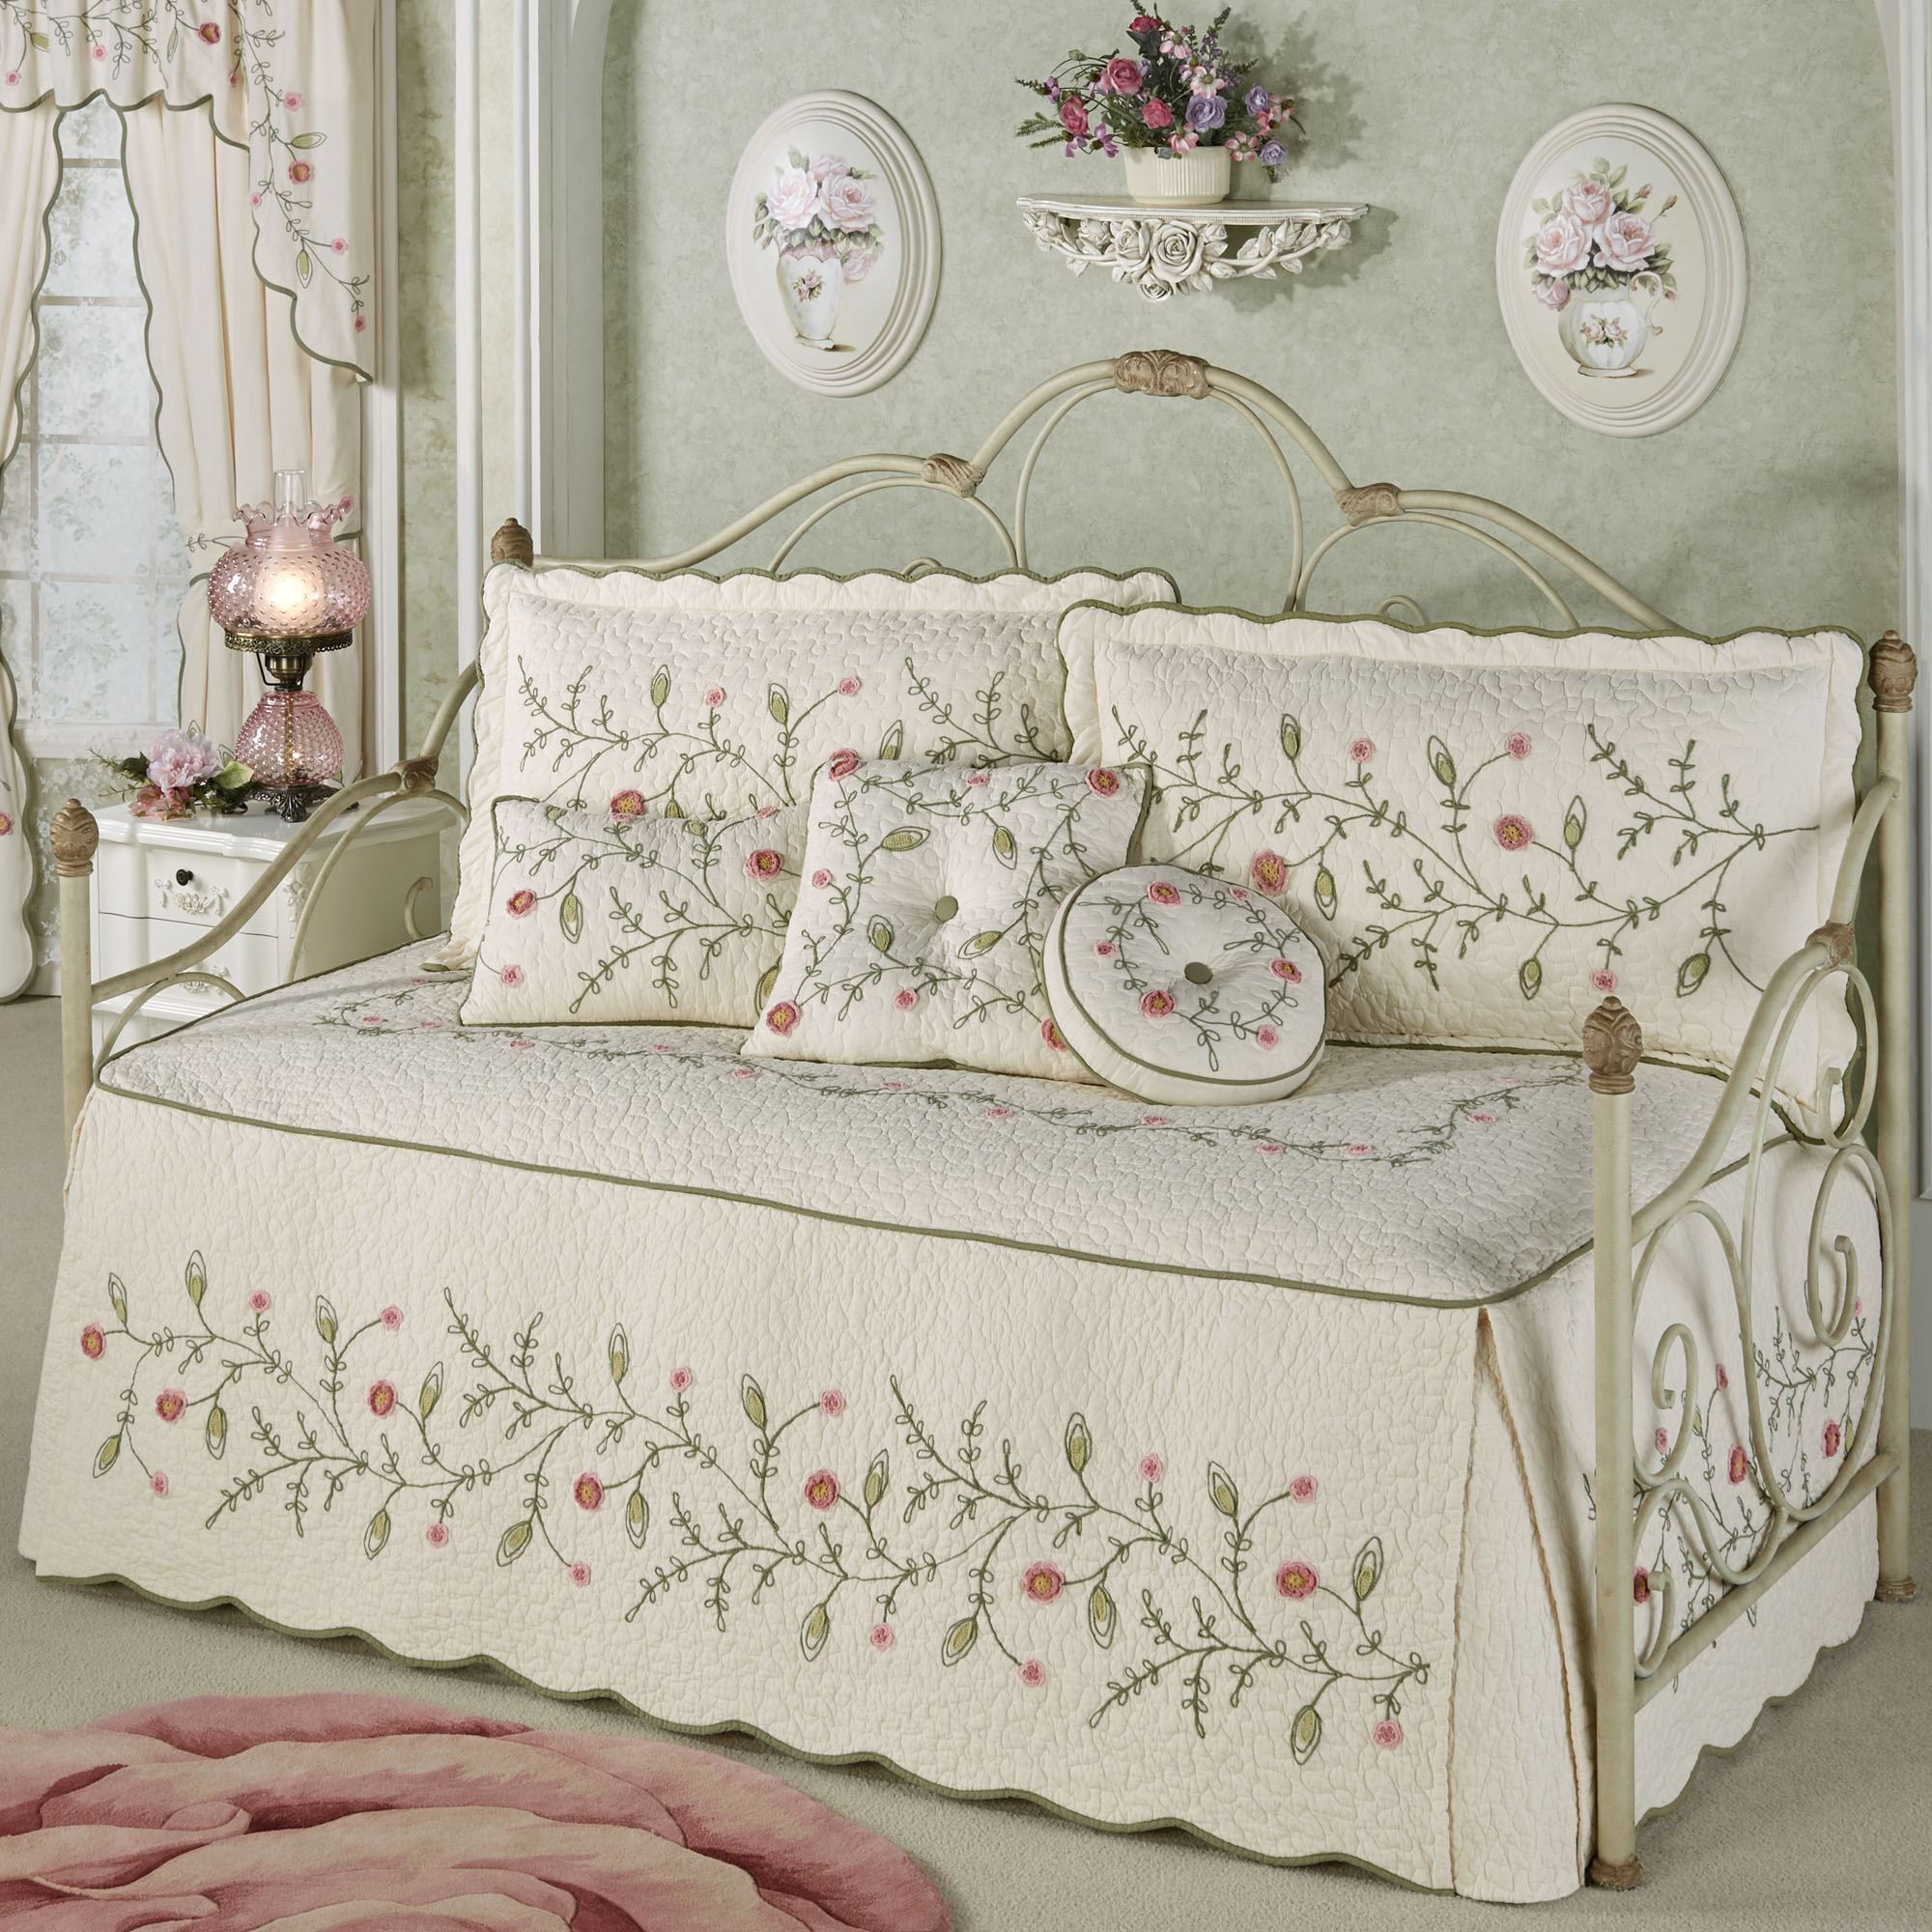 quilt floral bedding quilts p ruffled rose set heirloom fawn daybed